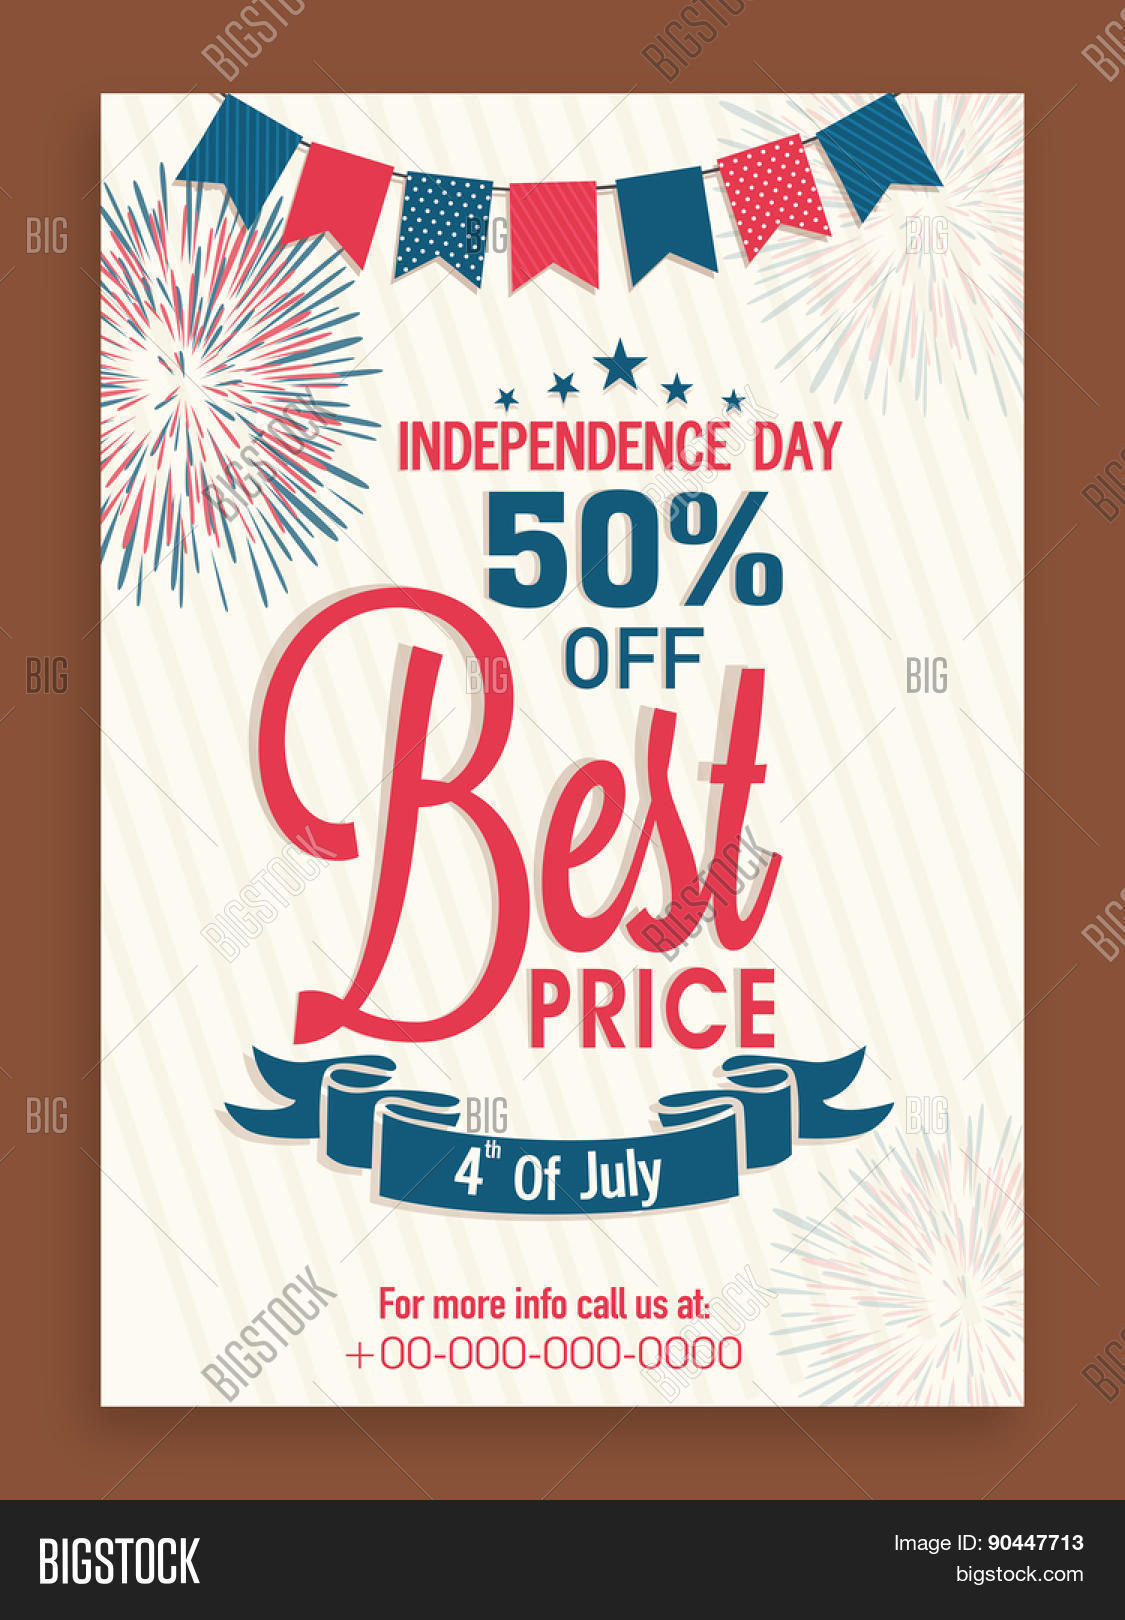 4th Of July, American Independence Day Flyer Or Banner Design With 50%  Discount Offer